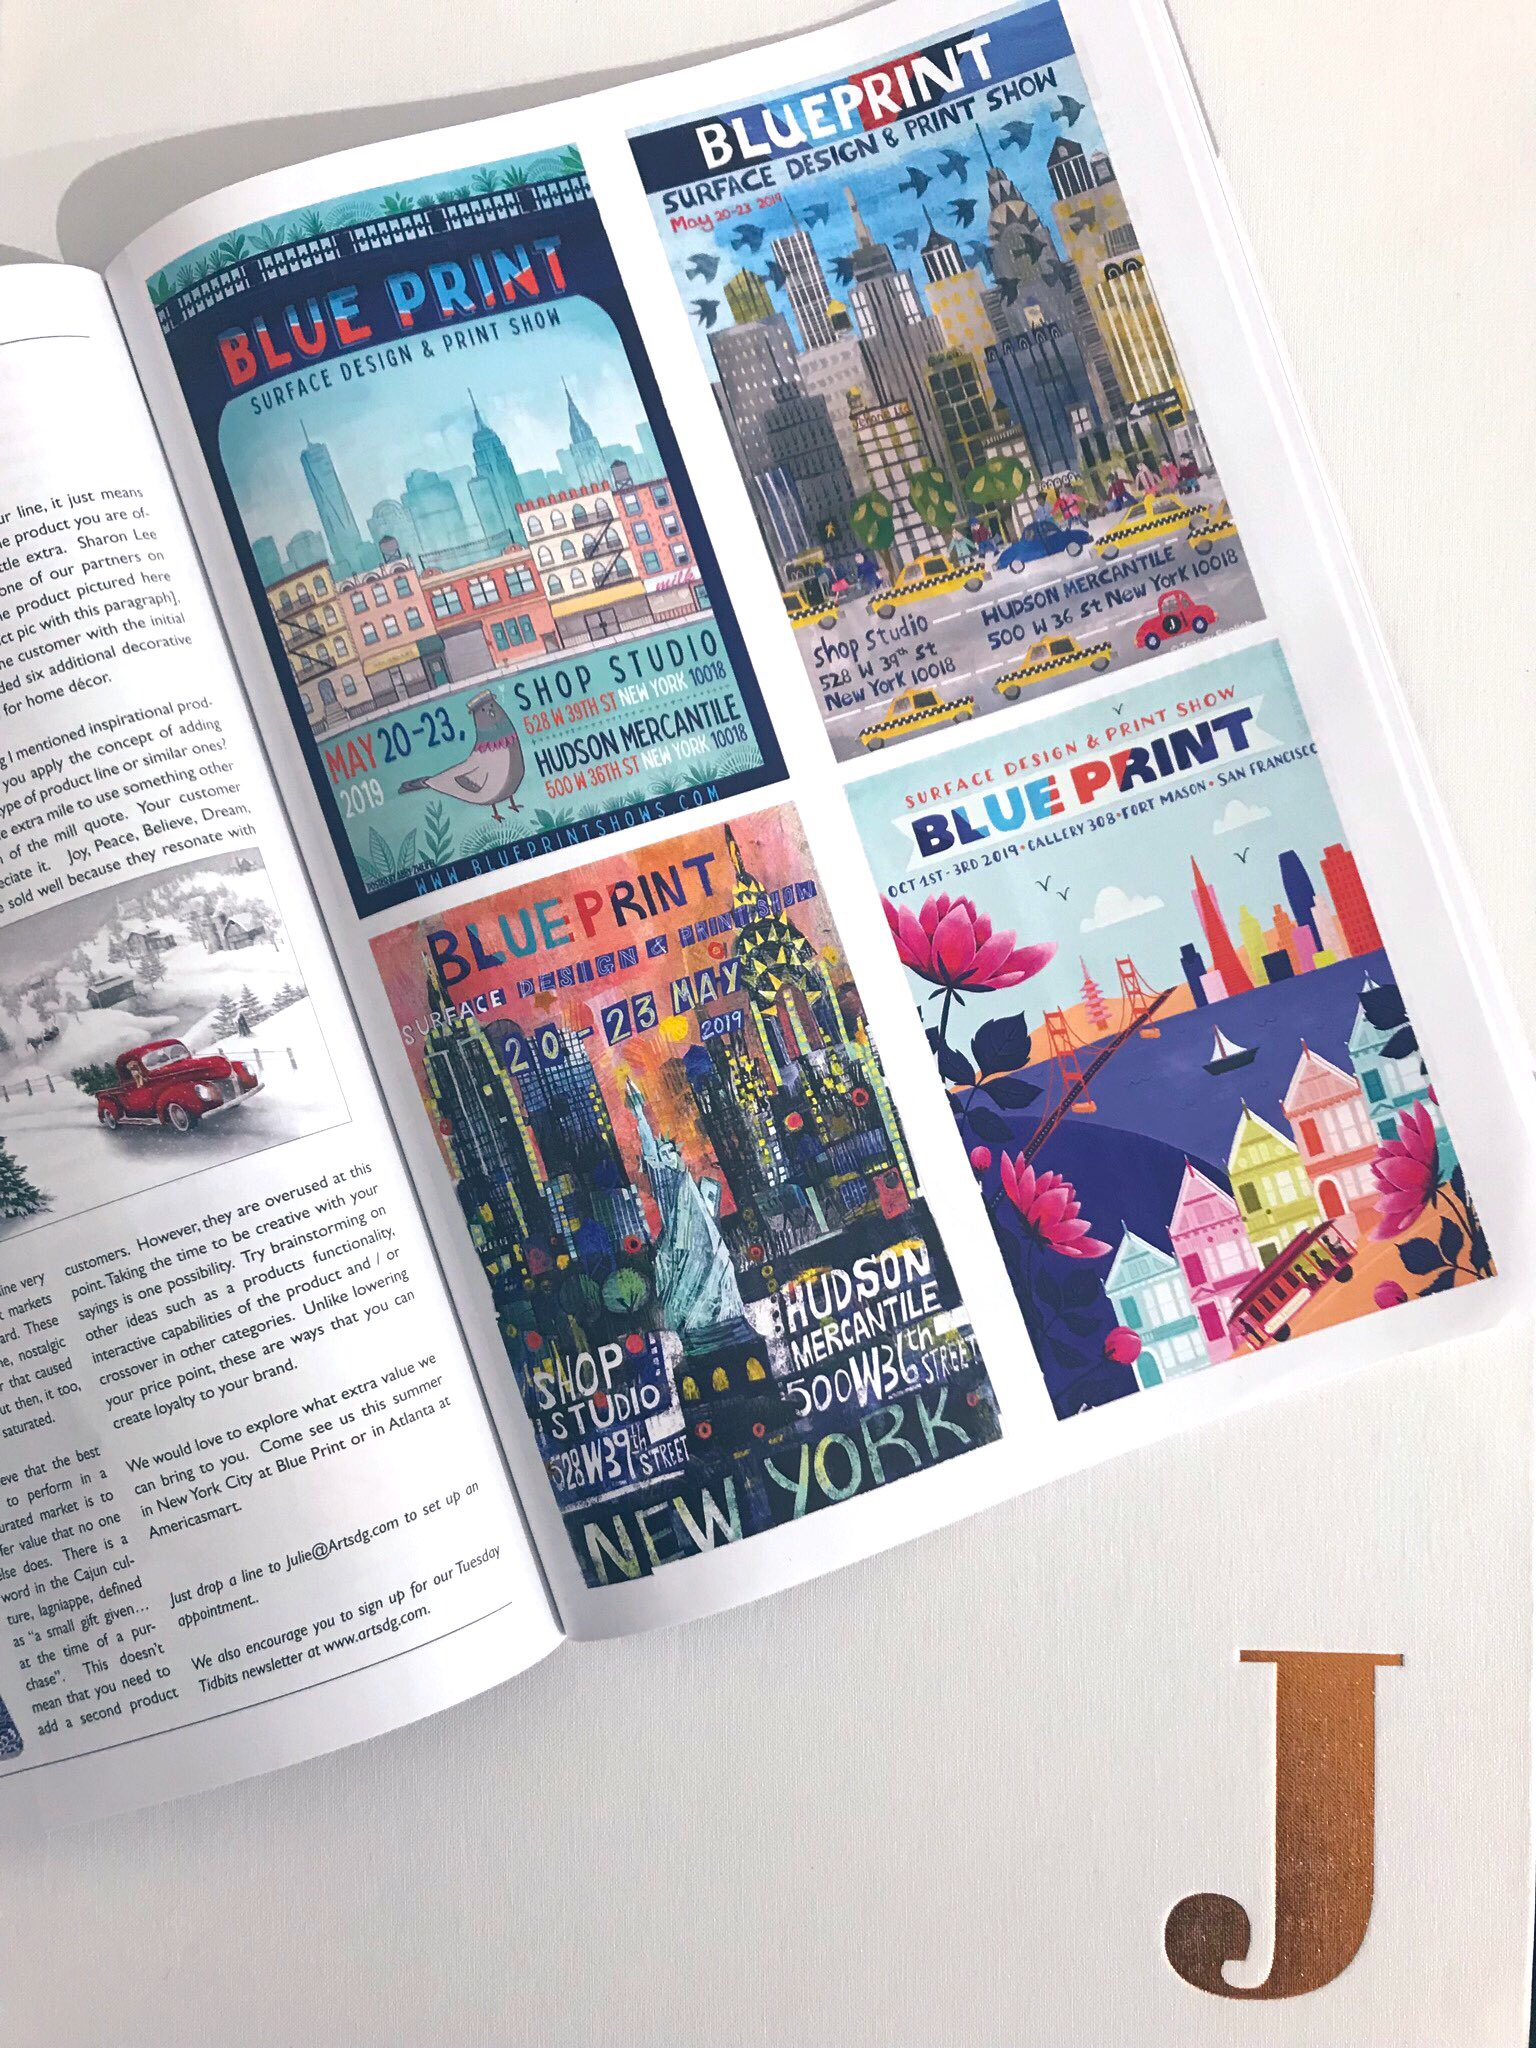 TOTAL LICENSING SUMMER ISSUE - Tracey English's image of New York City as chosen for one of three Blueprint posters for the 2019 May show features in Total's summer issue.All three posters are shown left alongside the San Francisco poster.Tracey's image shows the iconic city skyline of NYC - available to licenseJEHANE Ltd